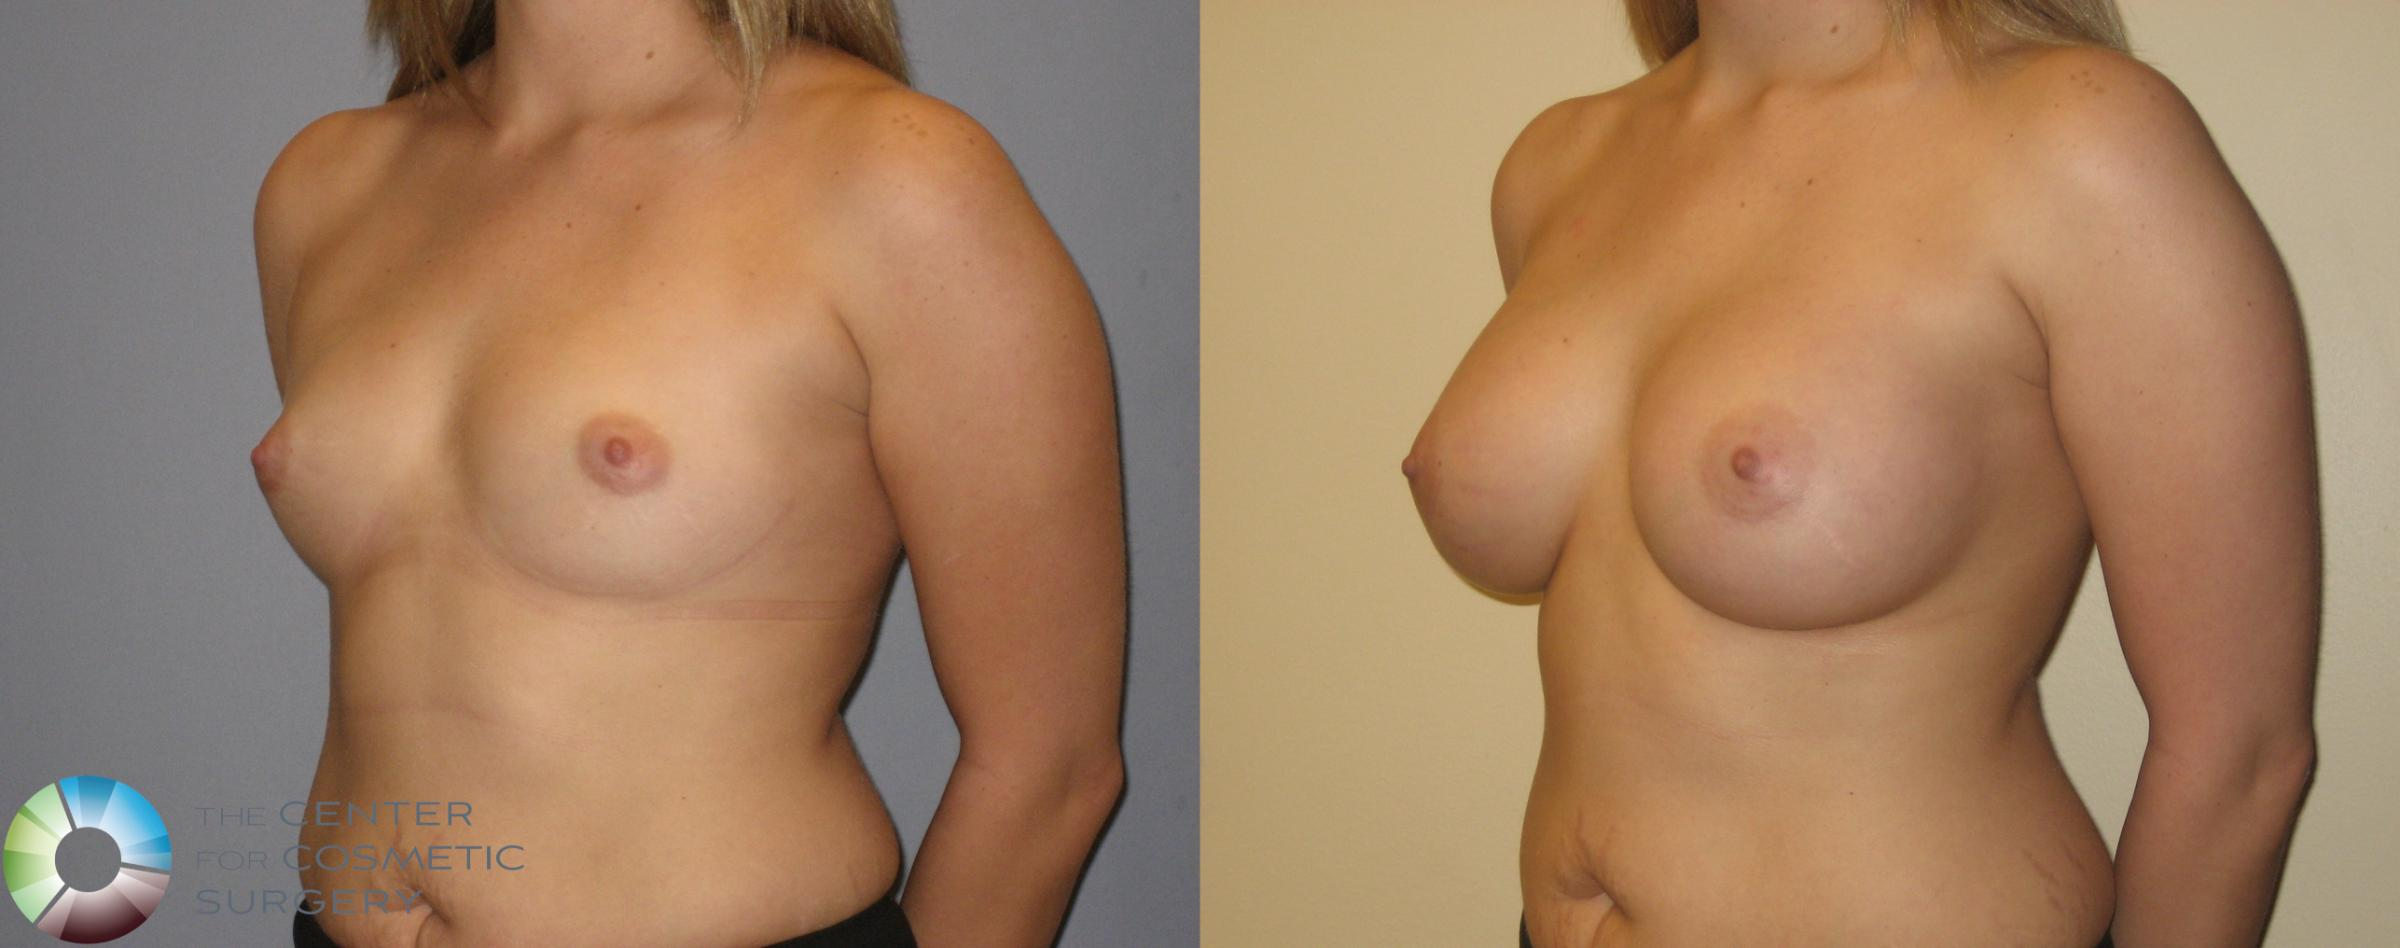 Breast Augmentation Case 137 Before & After View #1 | Golden, CO | The Center for Cosmetic Surgery